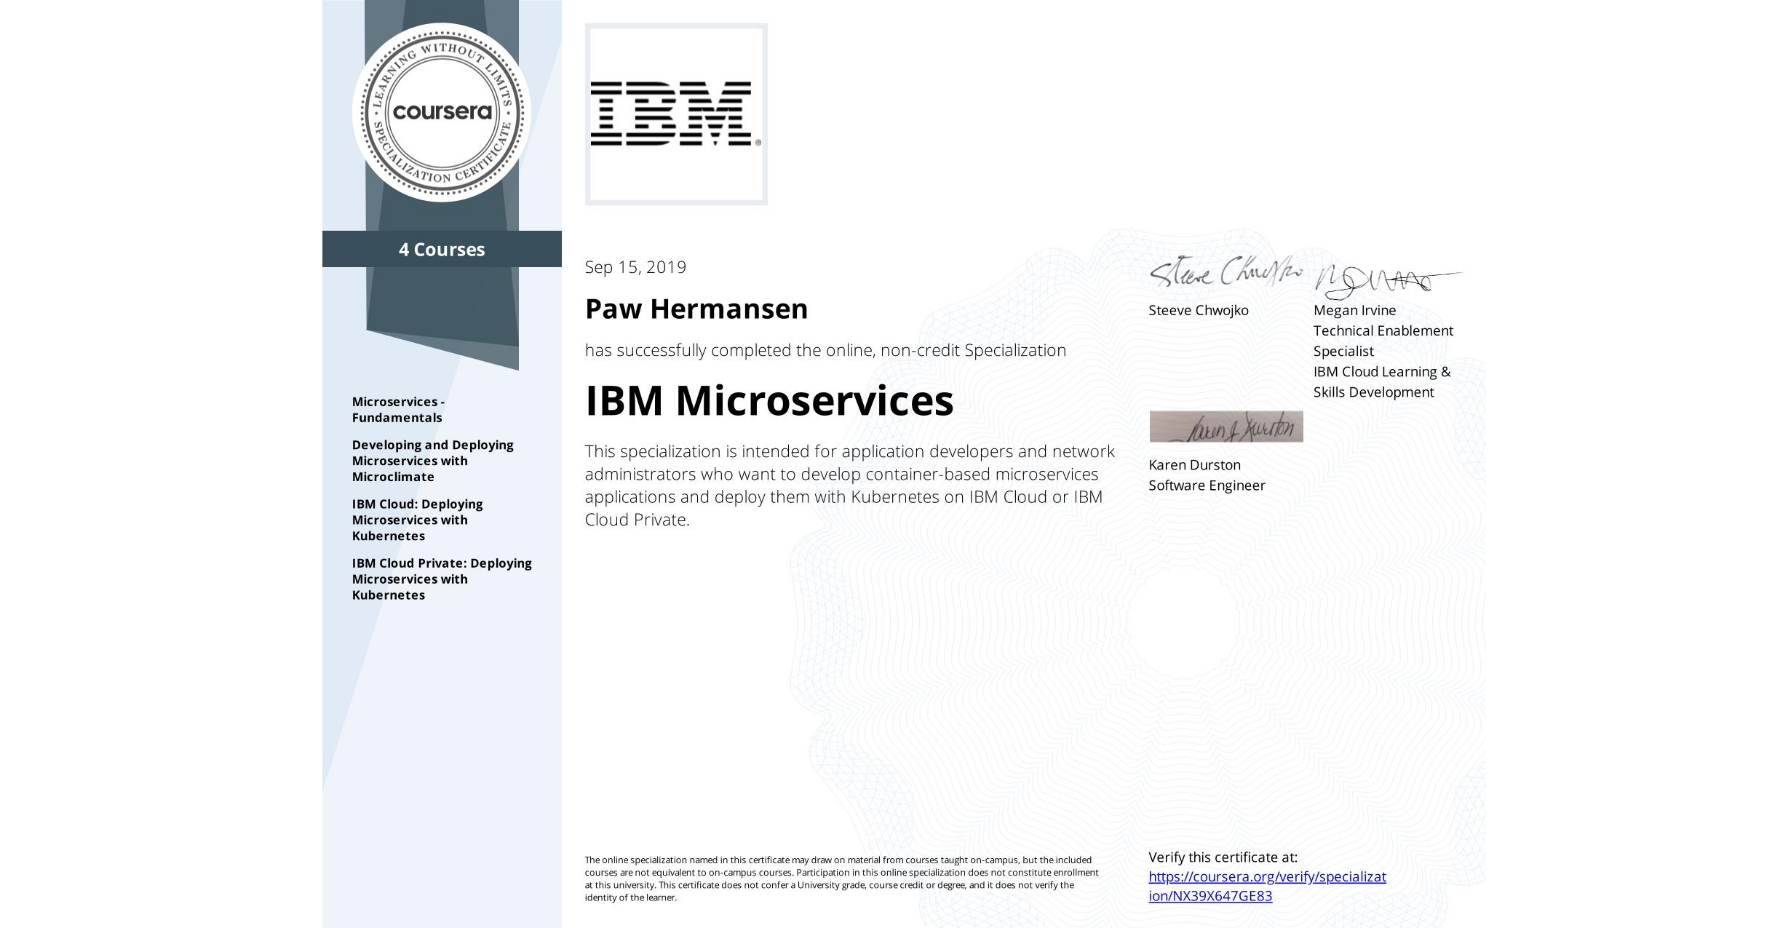 View certificate for Paw Hermansen, IBM Microservices, offered through Coursera. This specialization is intended for application developers and network administrators who want to develop container-based microservices applications and deploy them with Kubernetes on IBM Cloud or IBM Cloud Private.